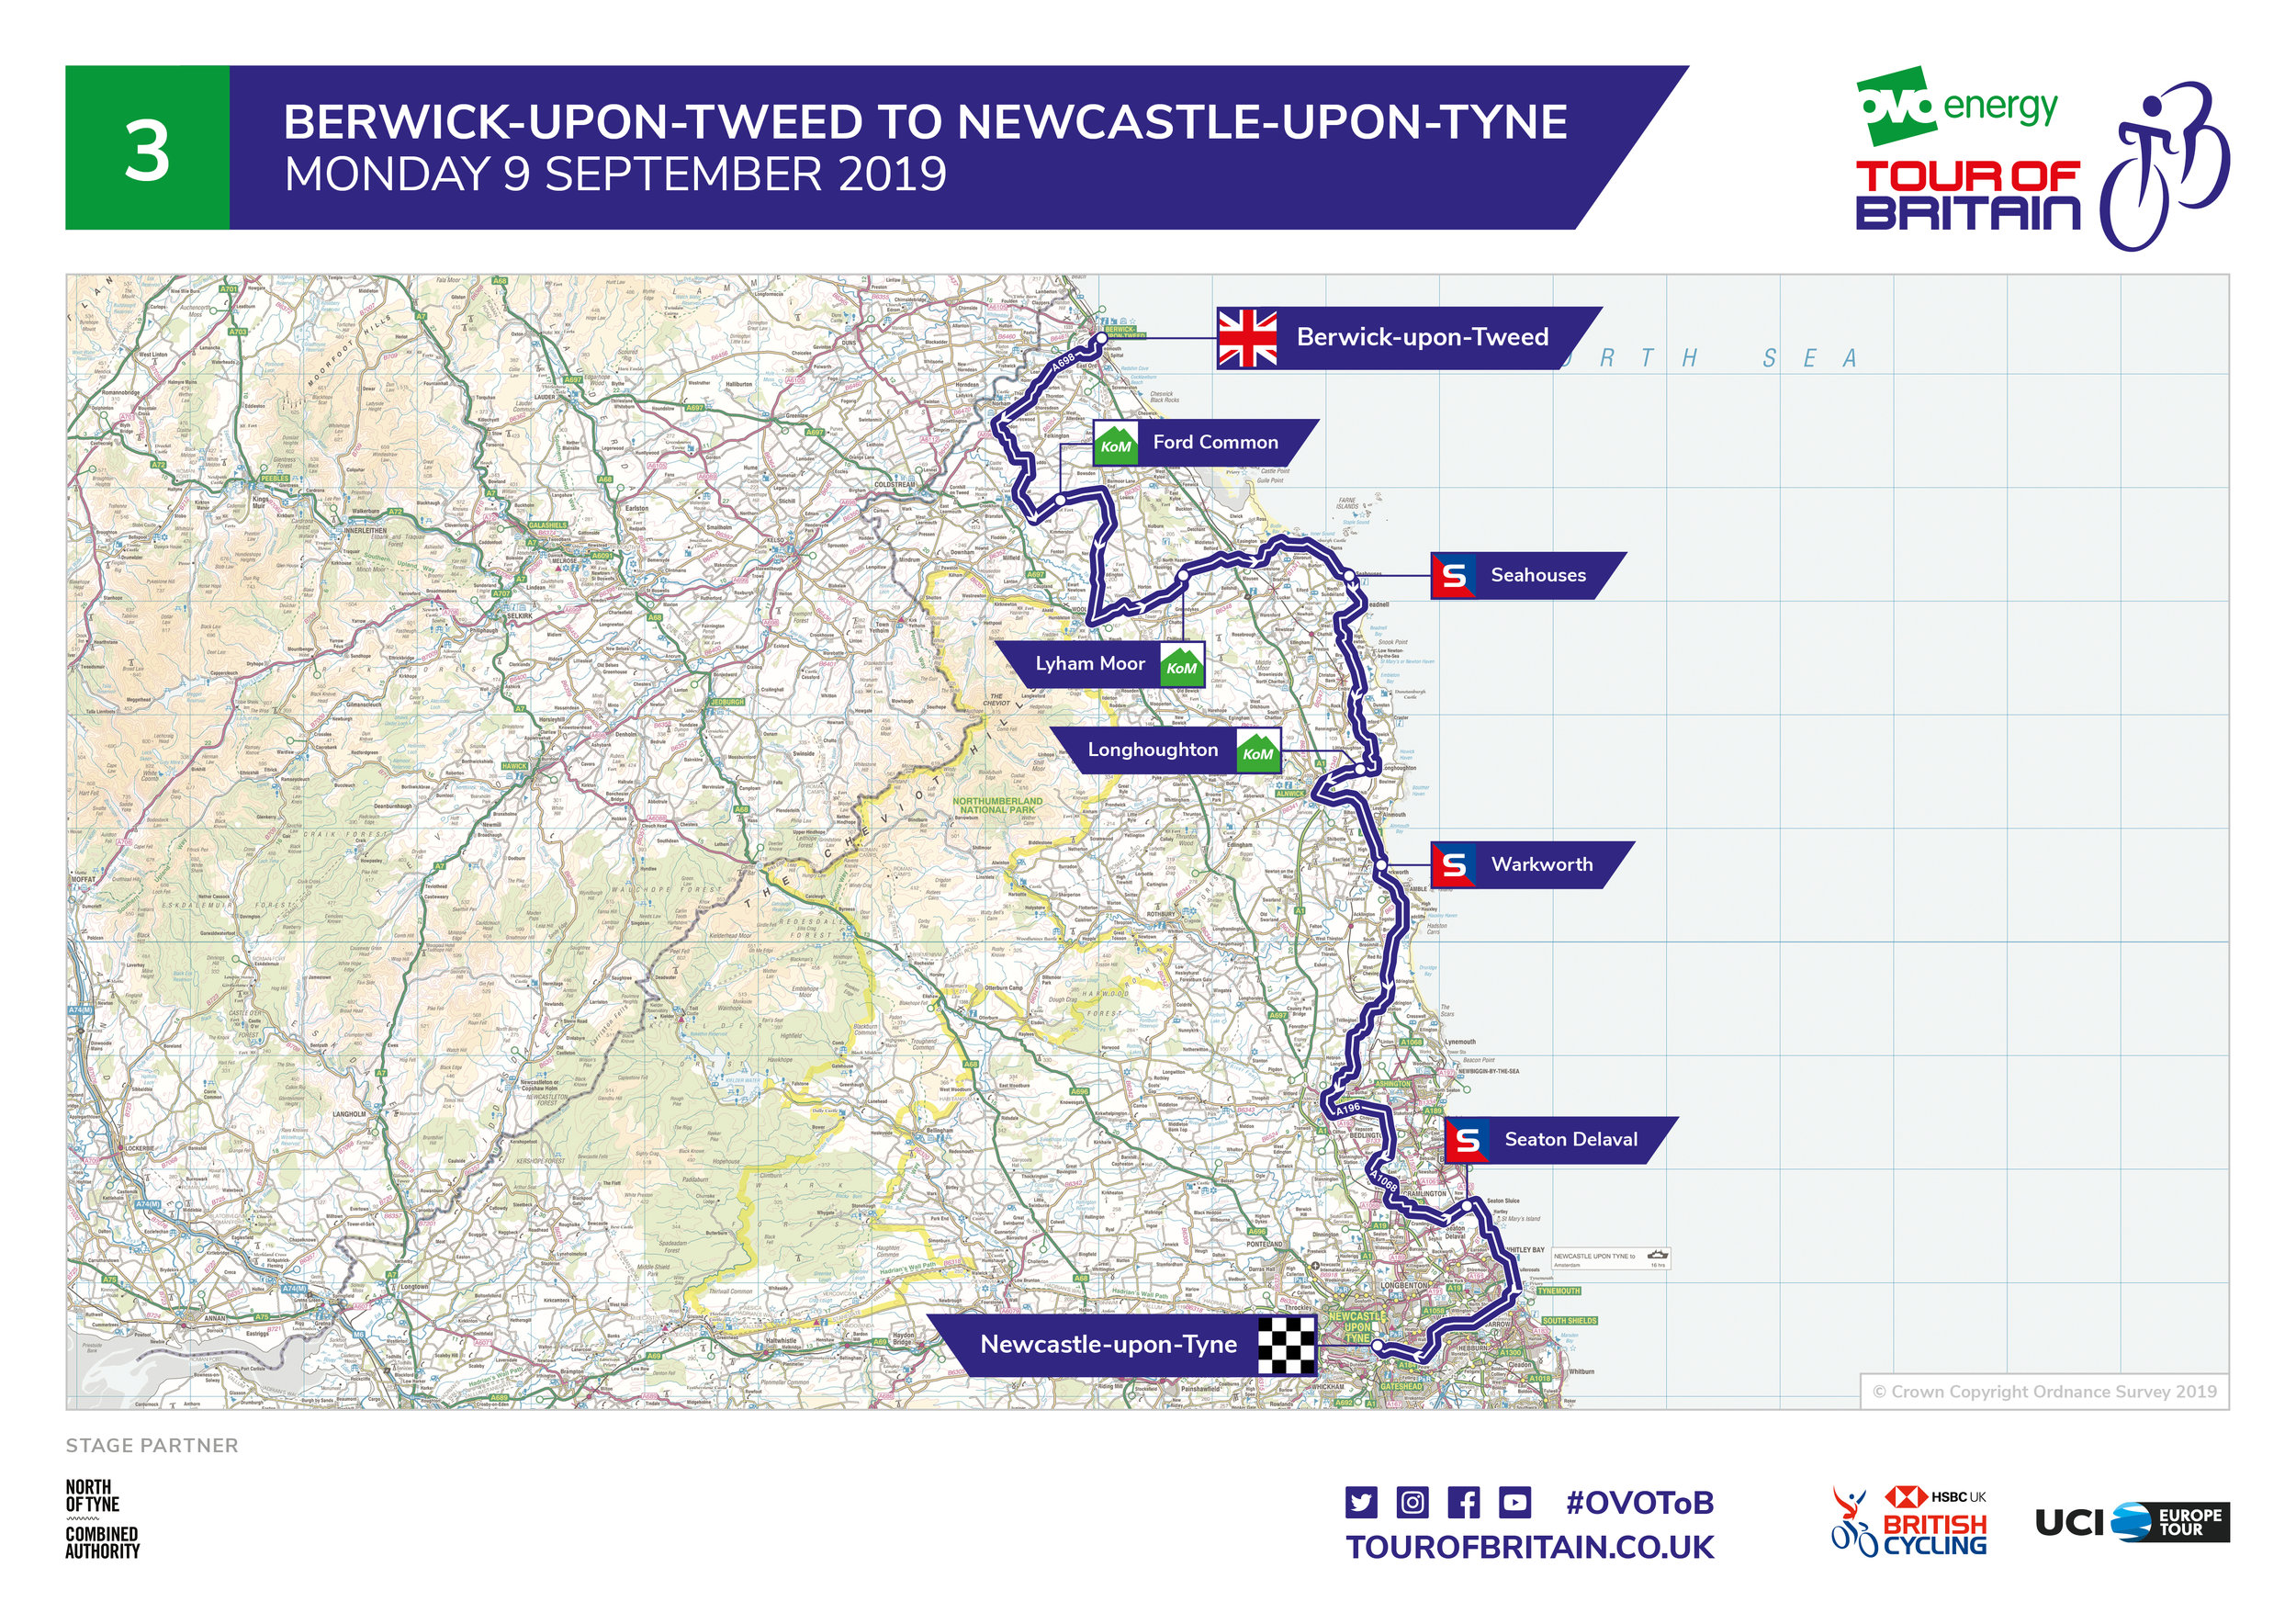 - Stage Three will see some of the world's top riders and teams contesting a 182-kilometre (114-mile) route from Berwick-upon-Tweed, heading along the North Tyneside coast and into Wallsend, before continuing to Newcastle Upon Tyne city centre, with a spectacular finish on Grey Street.